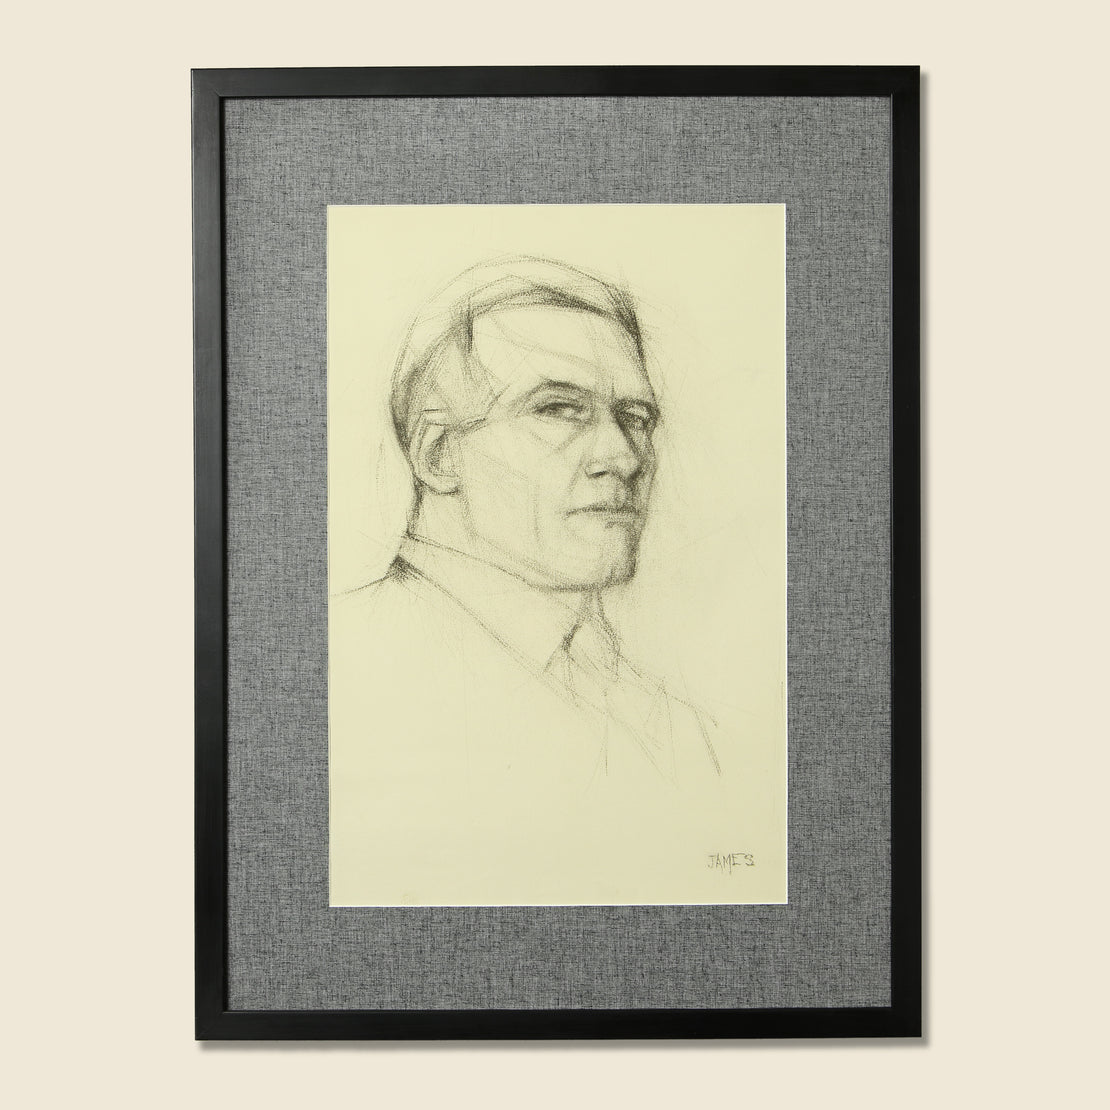 Vintage 1950s Cubist Pencil Portrait